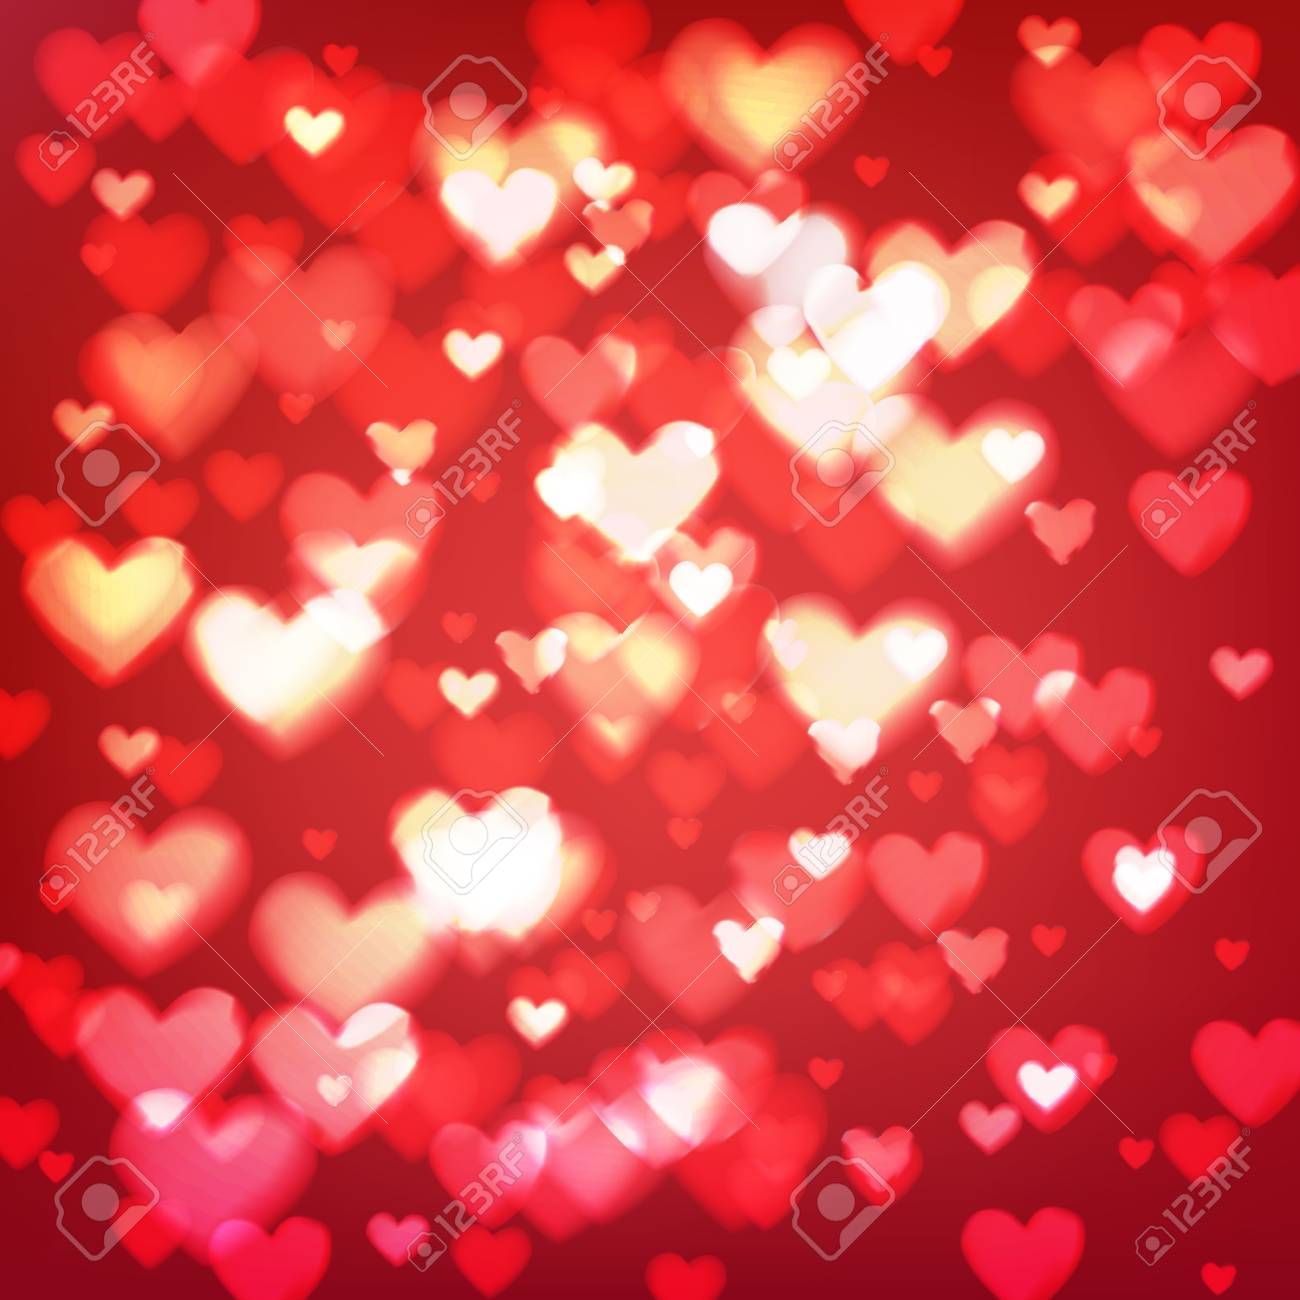 abstract romantic red background with hearts and bokeh lights st valentines day wallpaper blurred gl